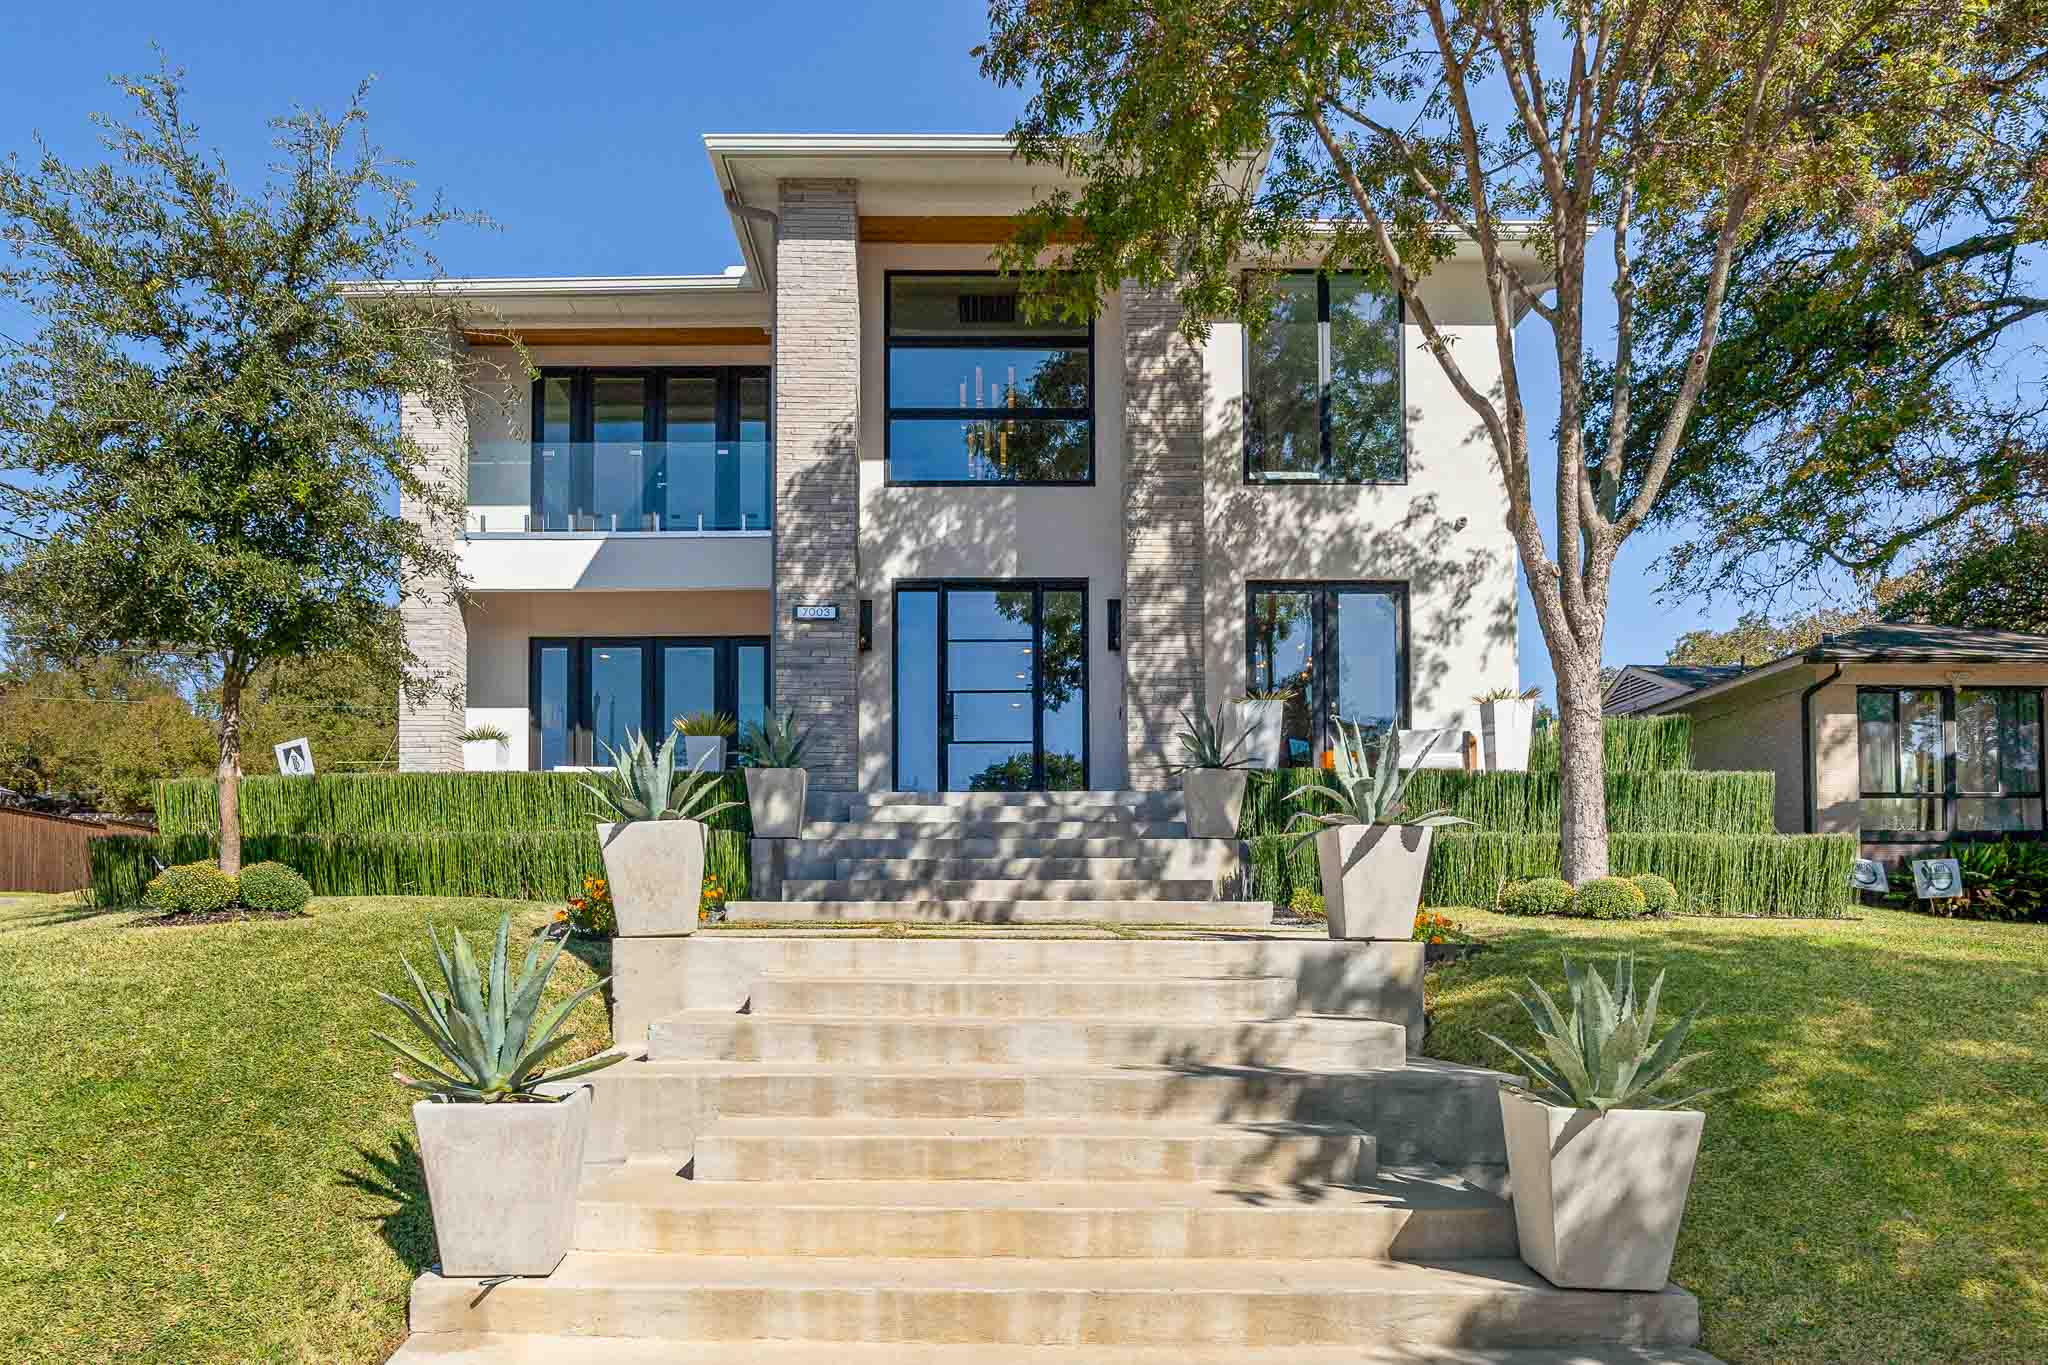 Highland Park home for sale with modern architecture